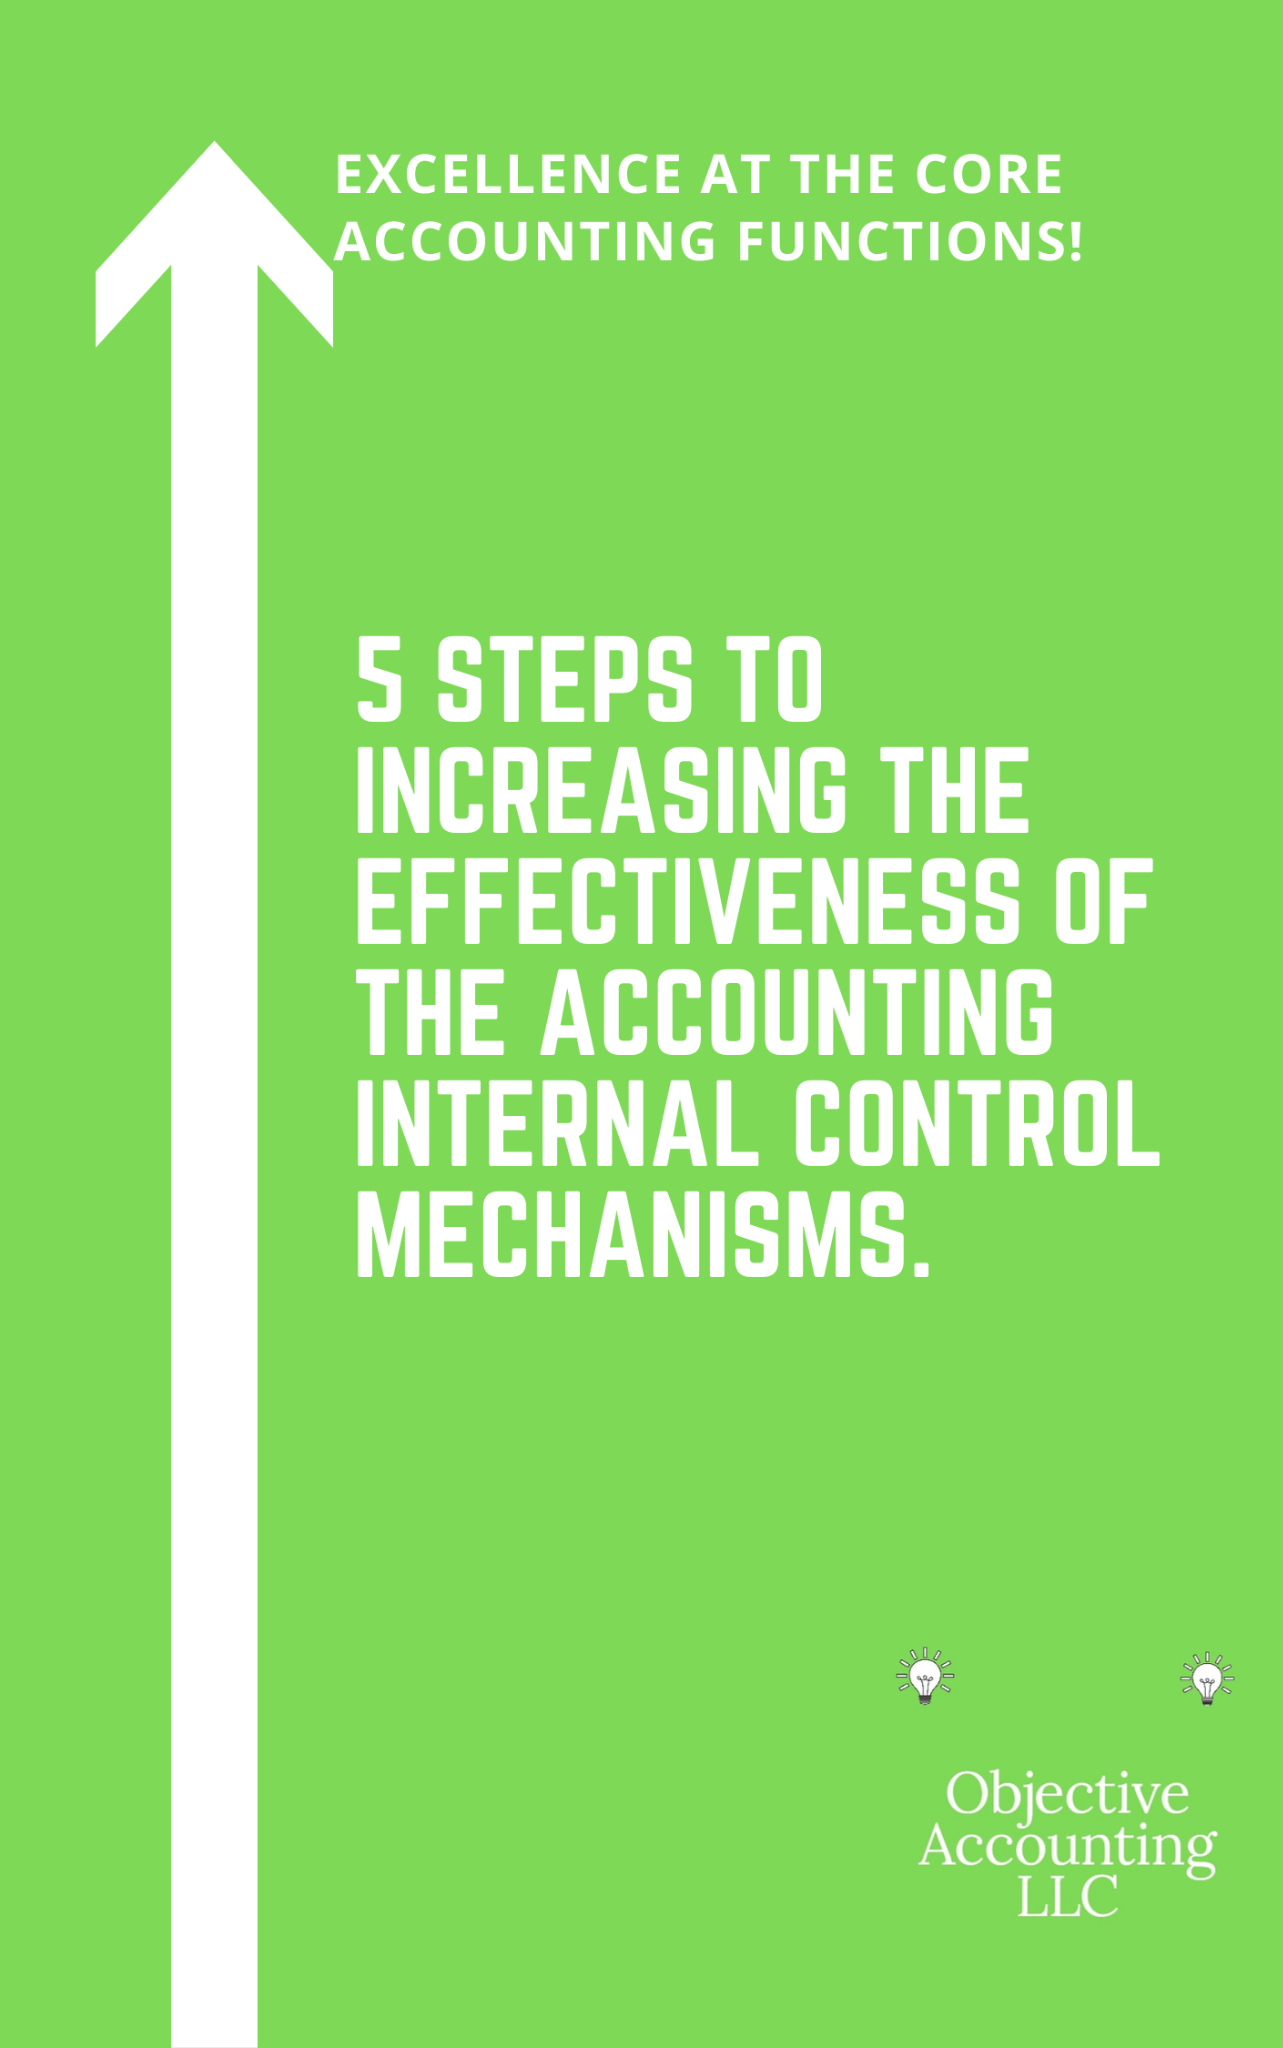 5 Steps You Can Take Now To Increase The Effectiveness Of The Accounting Internal Controls!